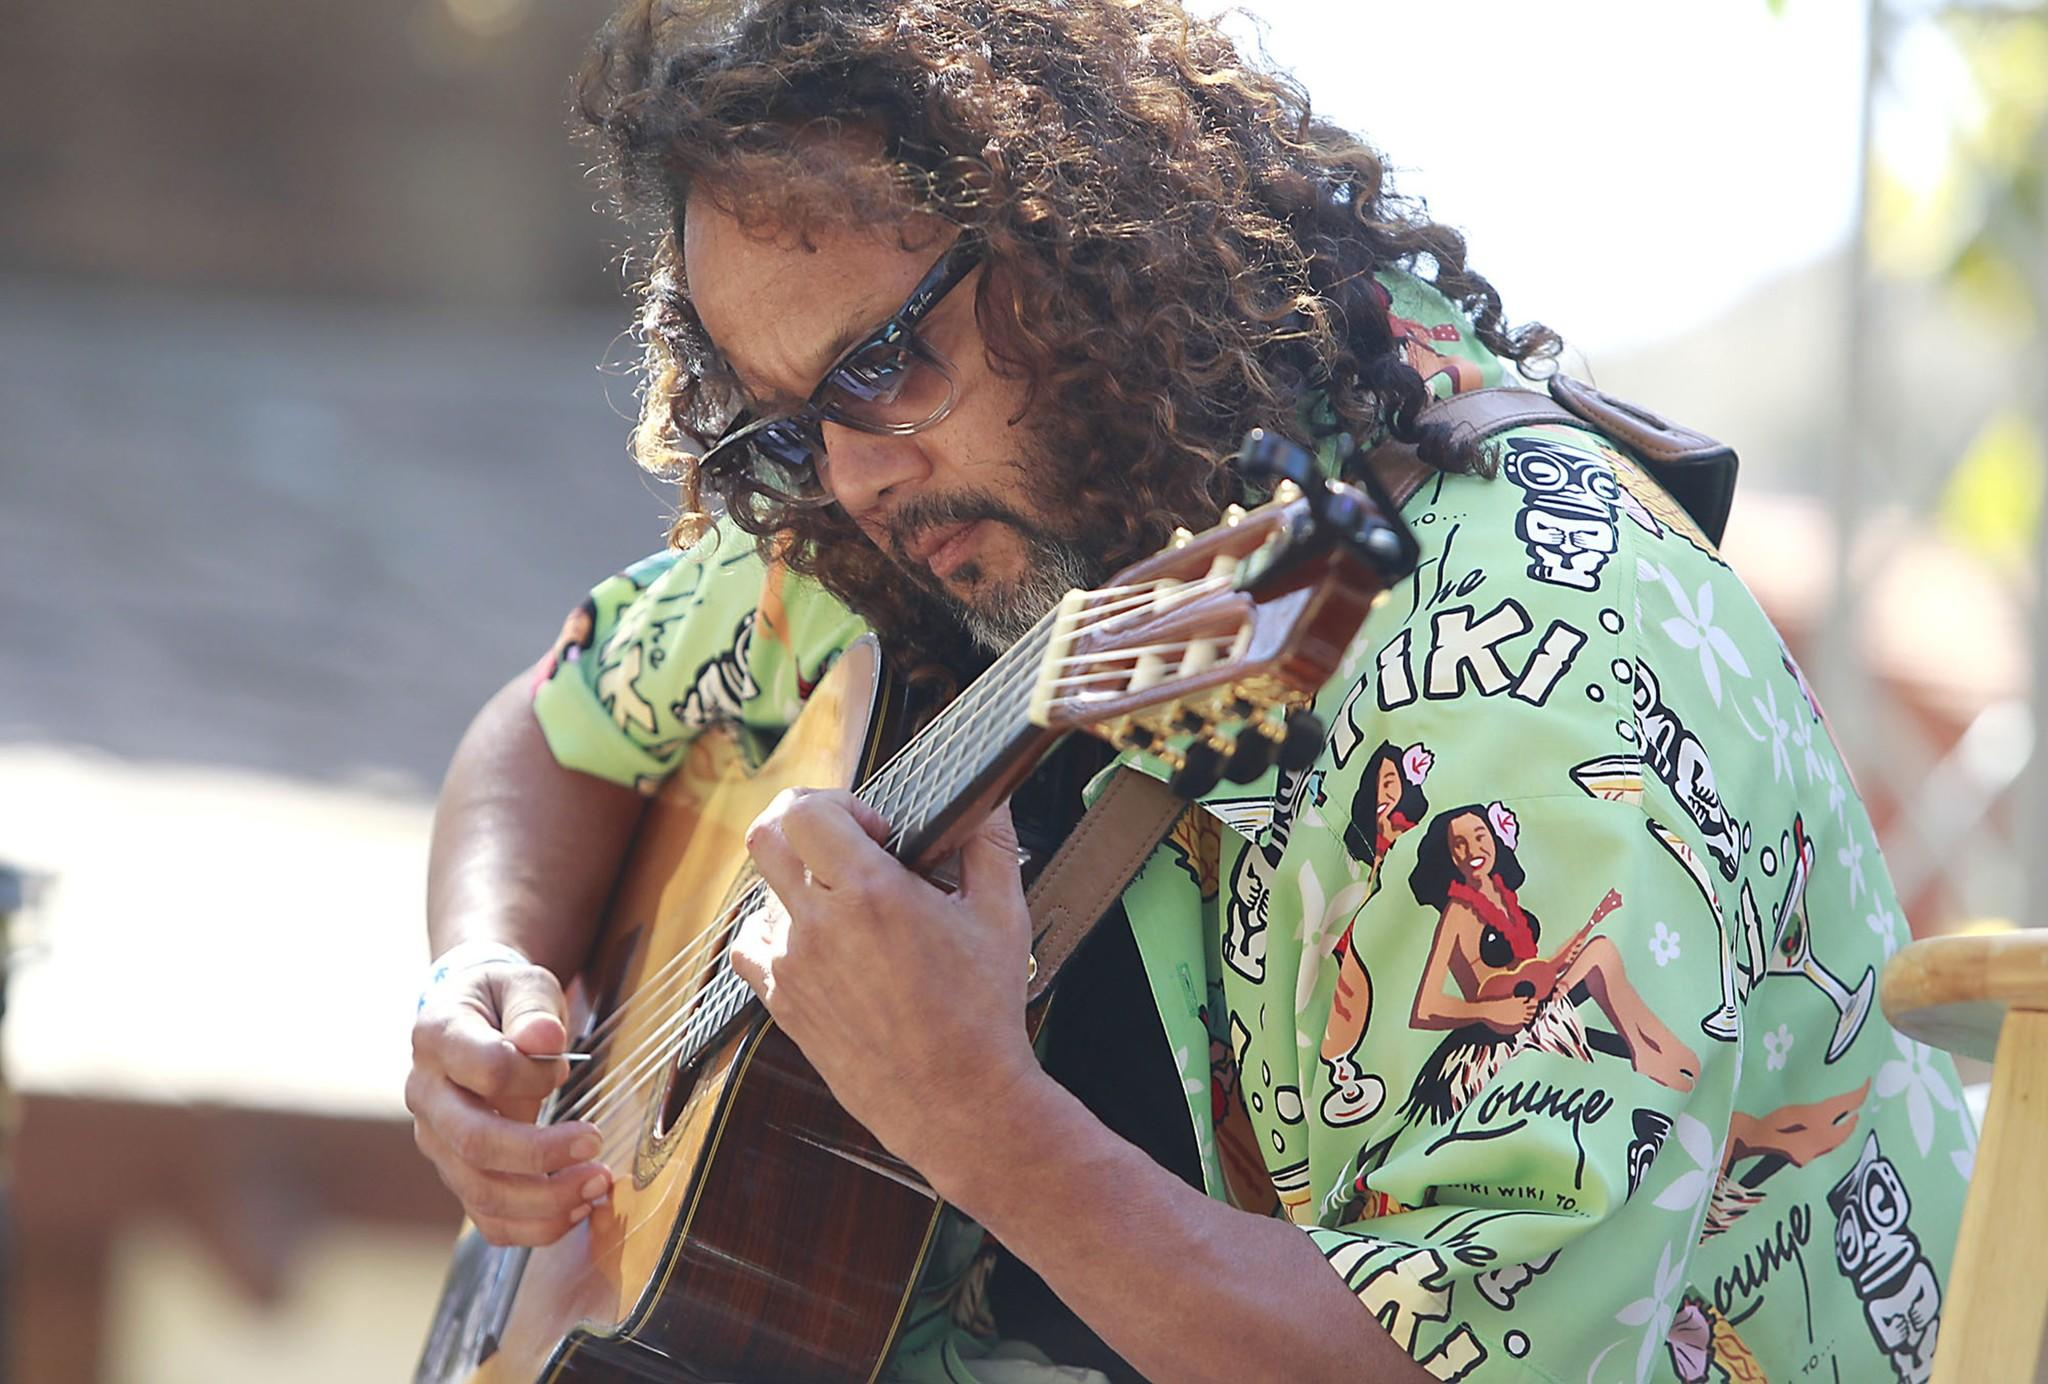 Local guitarist and performer Ken Garcia brought his Latin groove to the main stage during the 2014 Blue Water Music Festival at the Sawdust on Sunday.